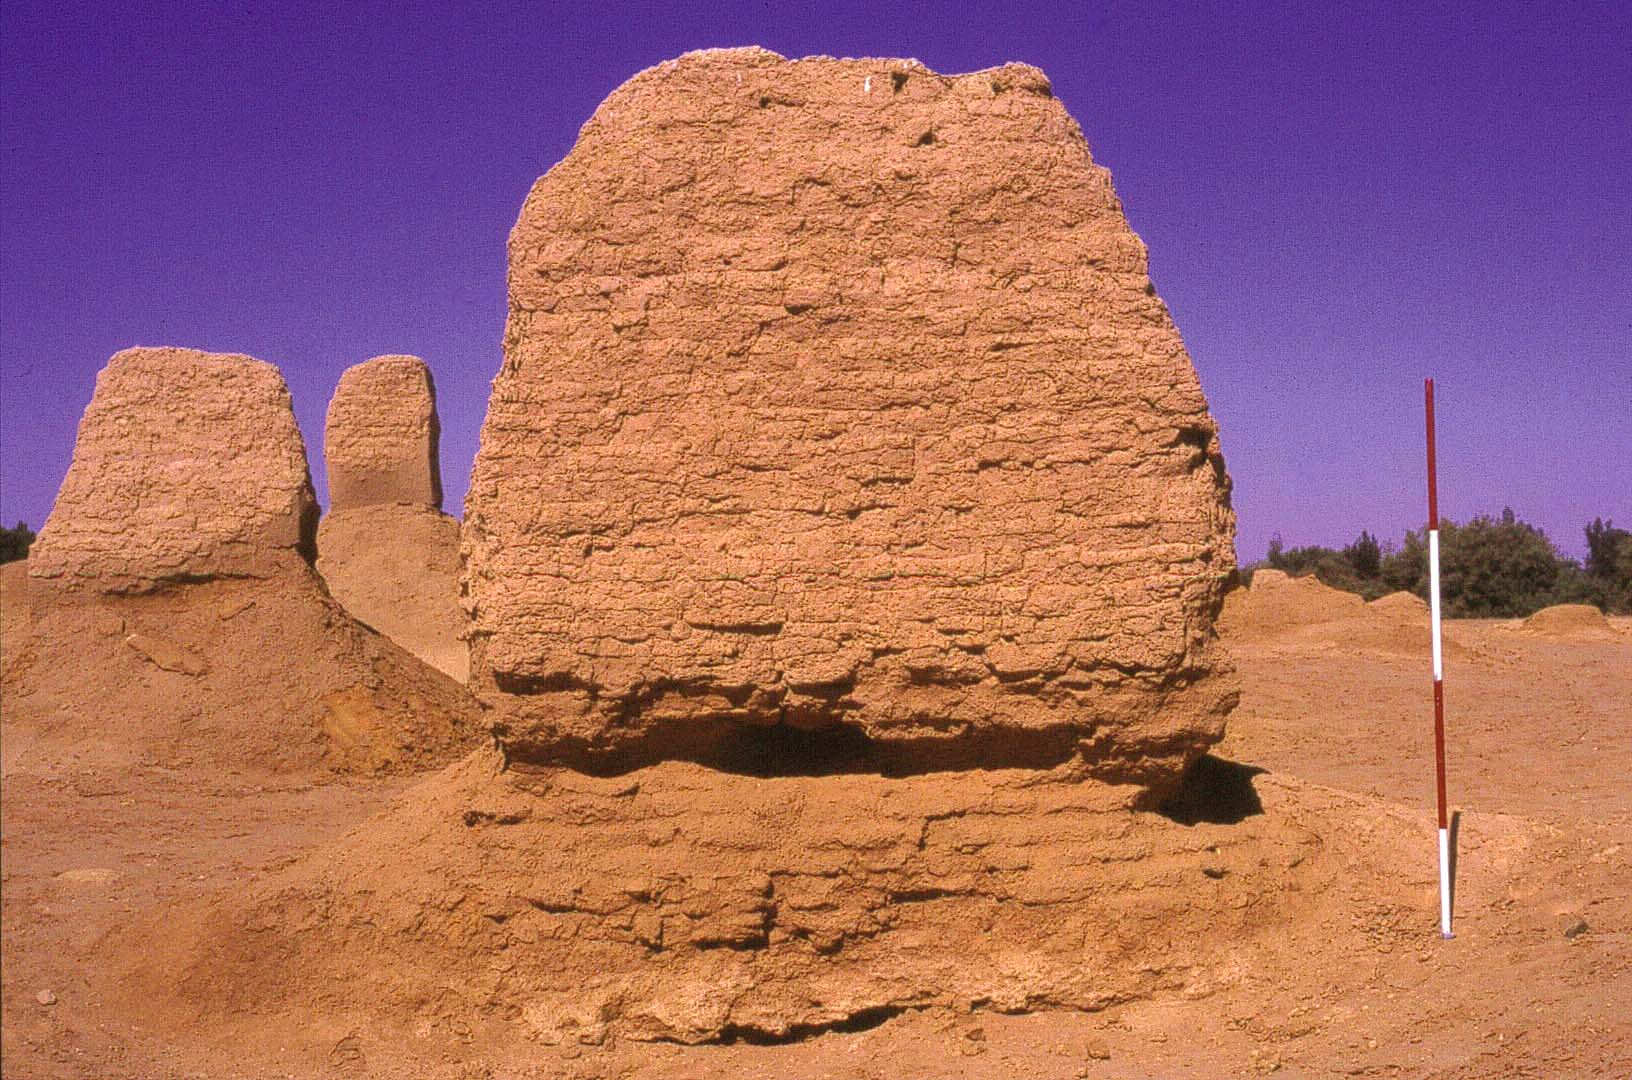 Garama: an ancient civilisation in the Central Sahara